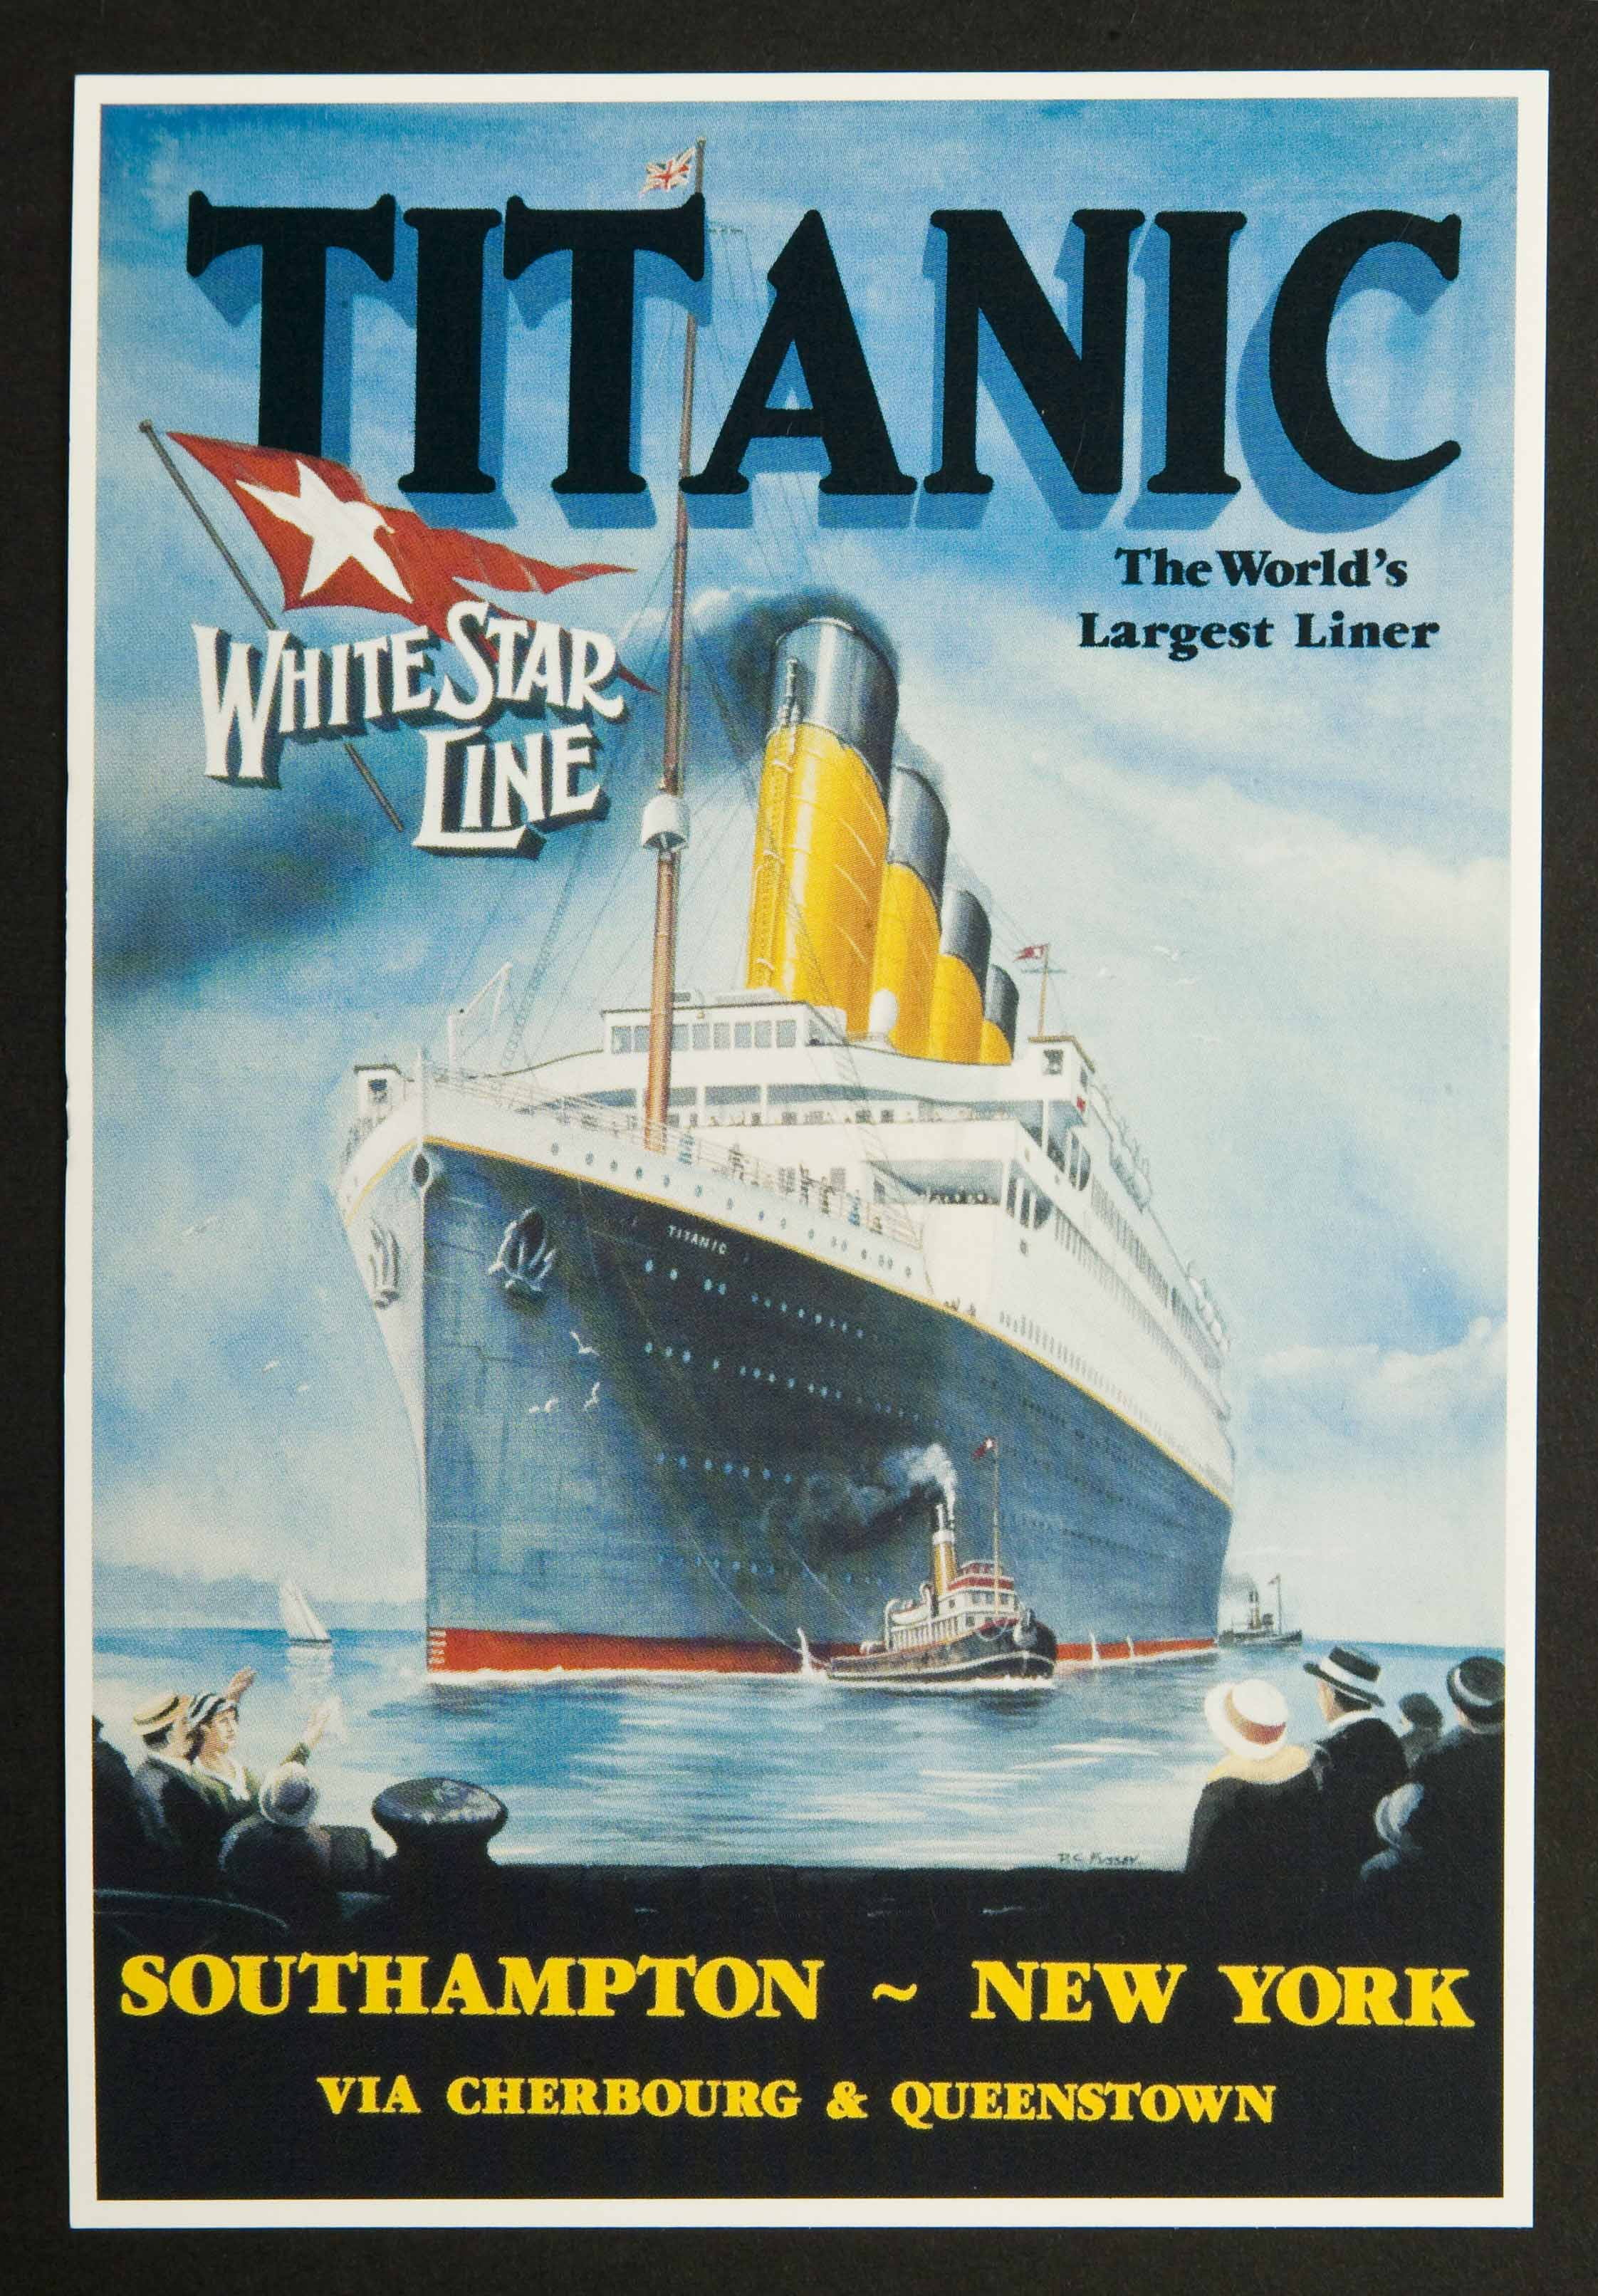 Titanic - The World's Largest Liner A1 Poster